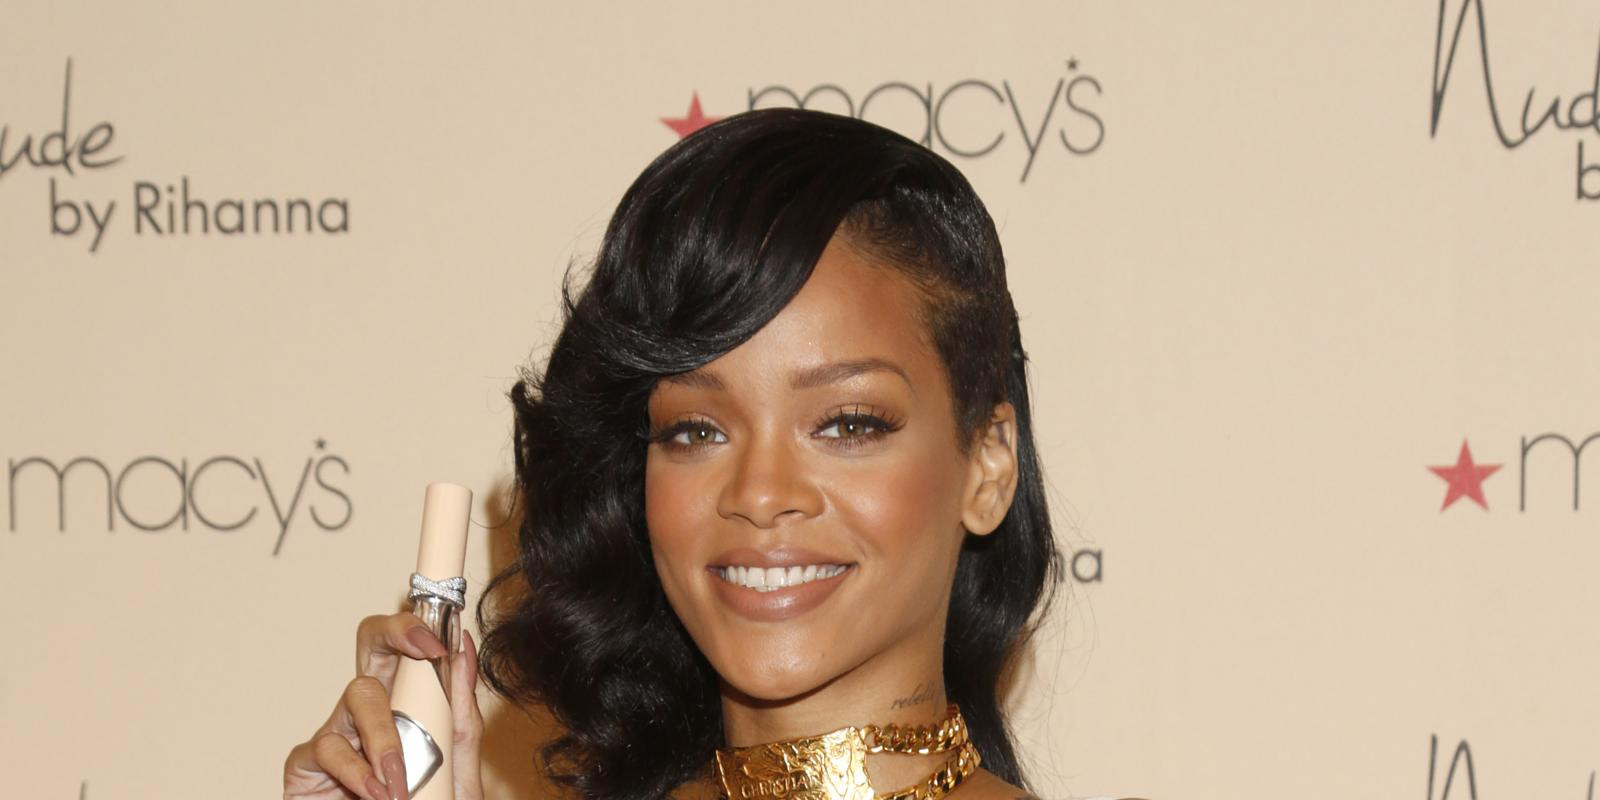 Rihanna launches Nude perfume, wears Chris Brown gold